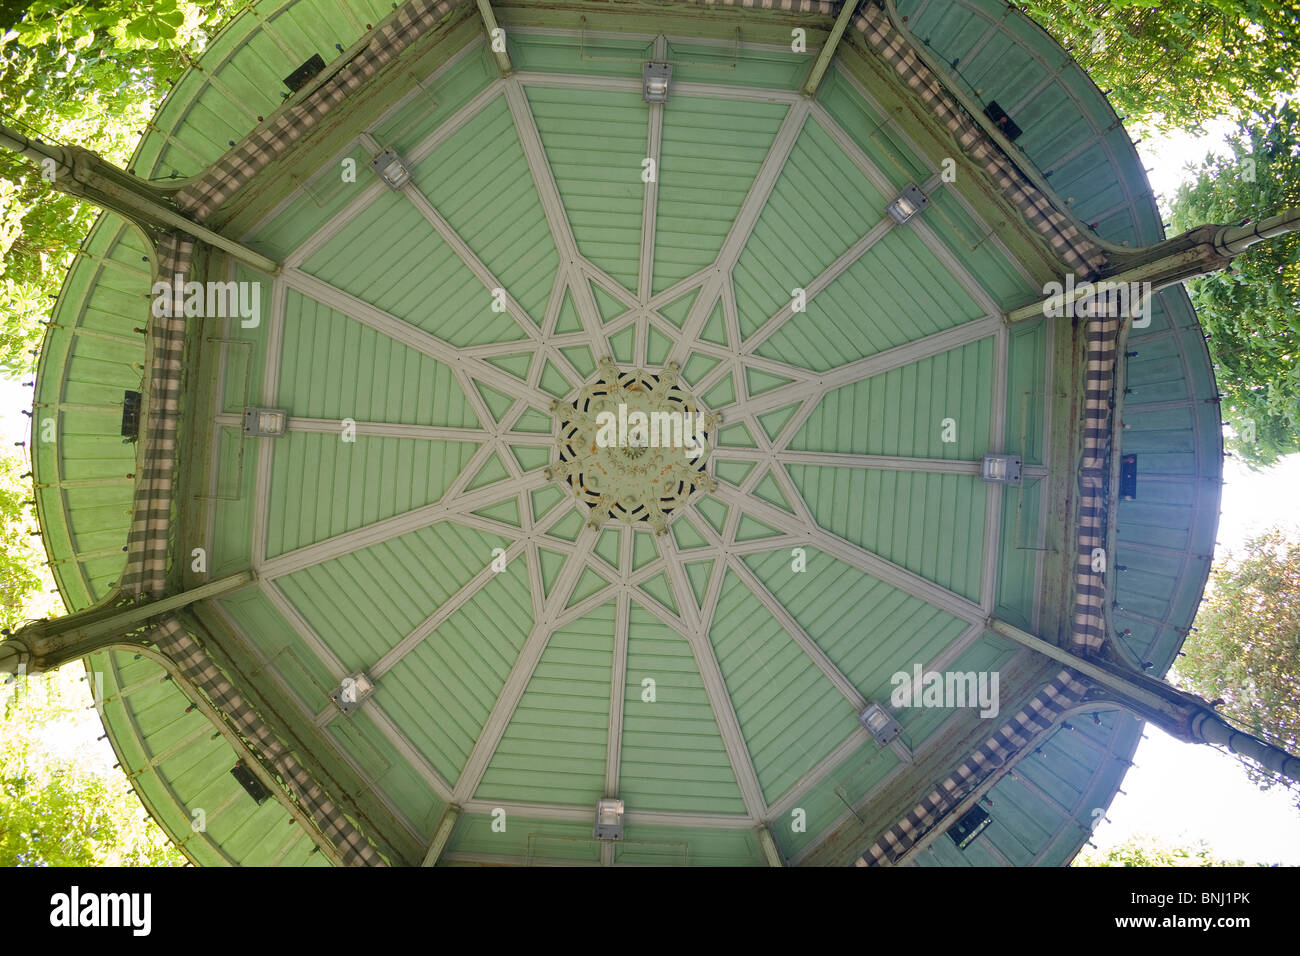 The bandstand of the hospital spring in the Vichy springs park (France). Le kiosque à musique de la source - Stock Image